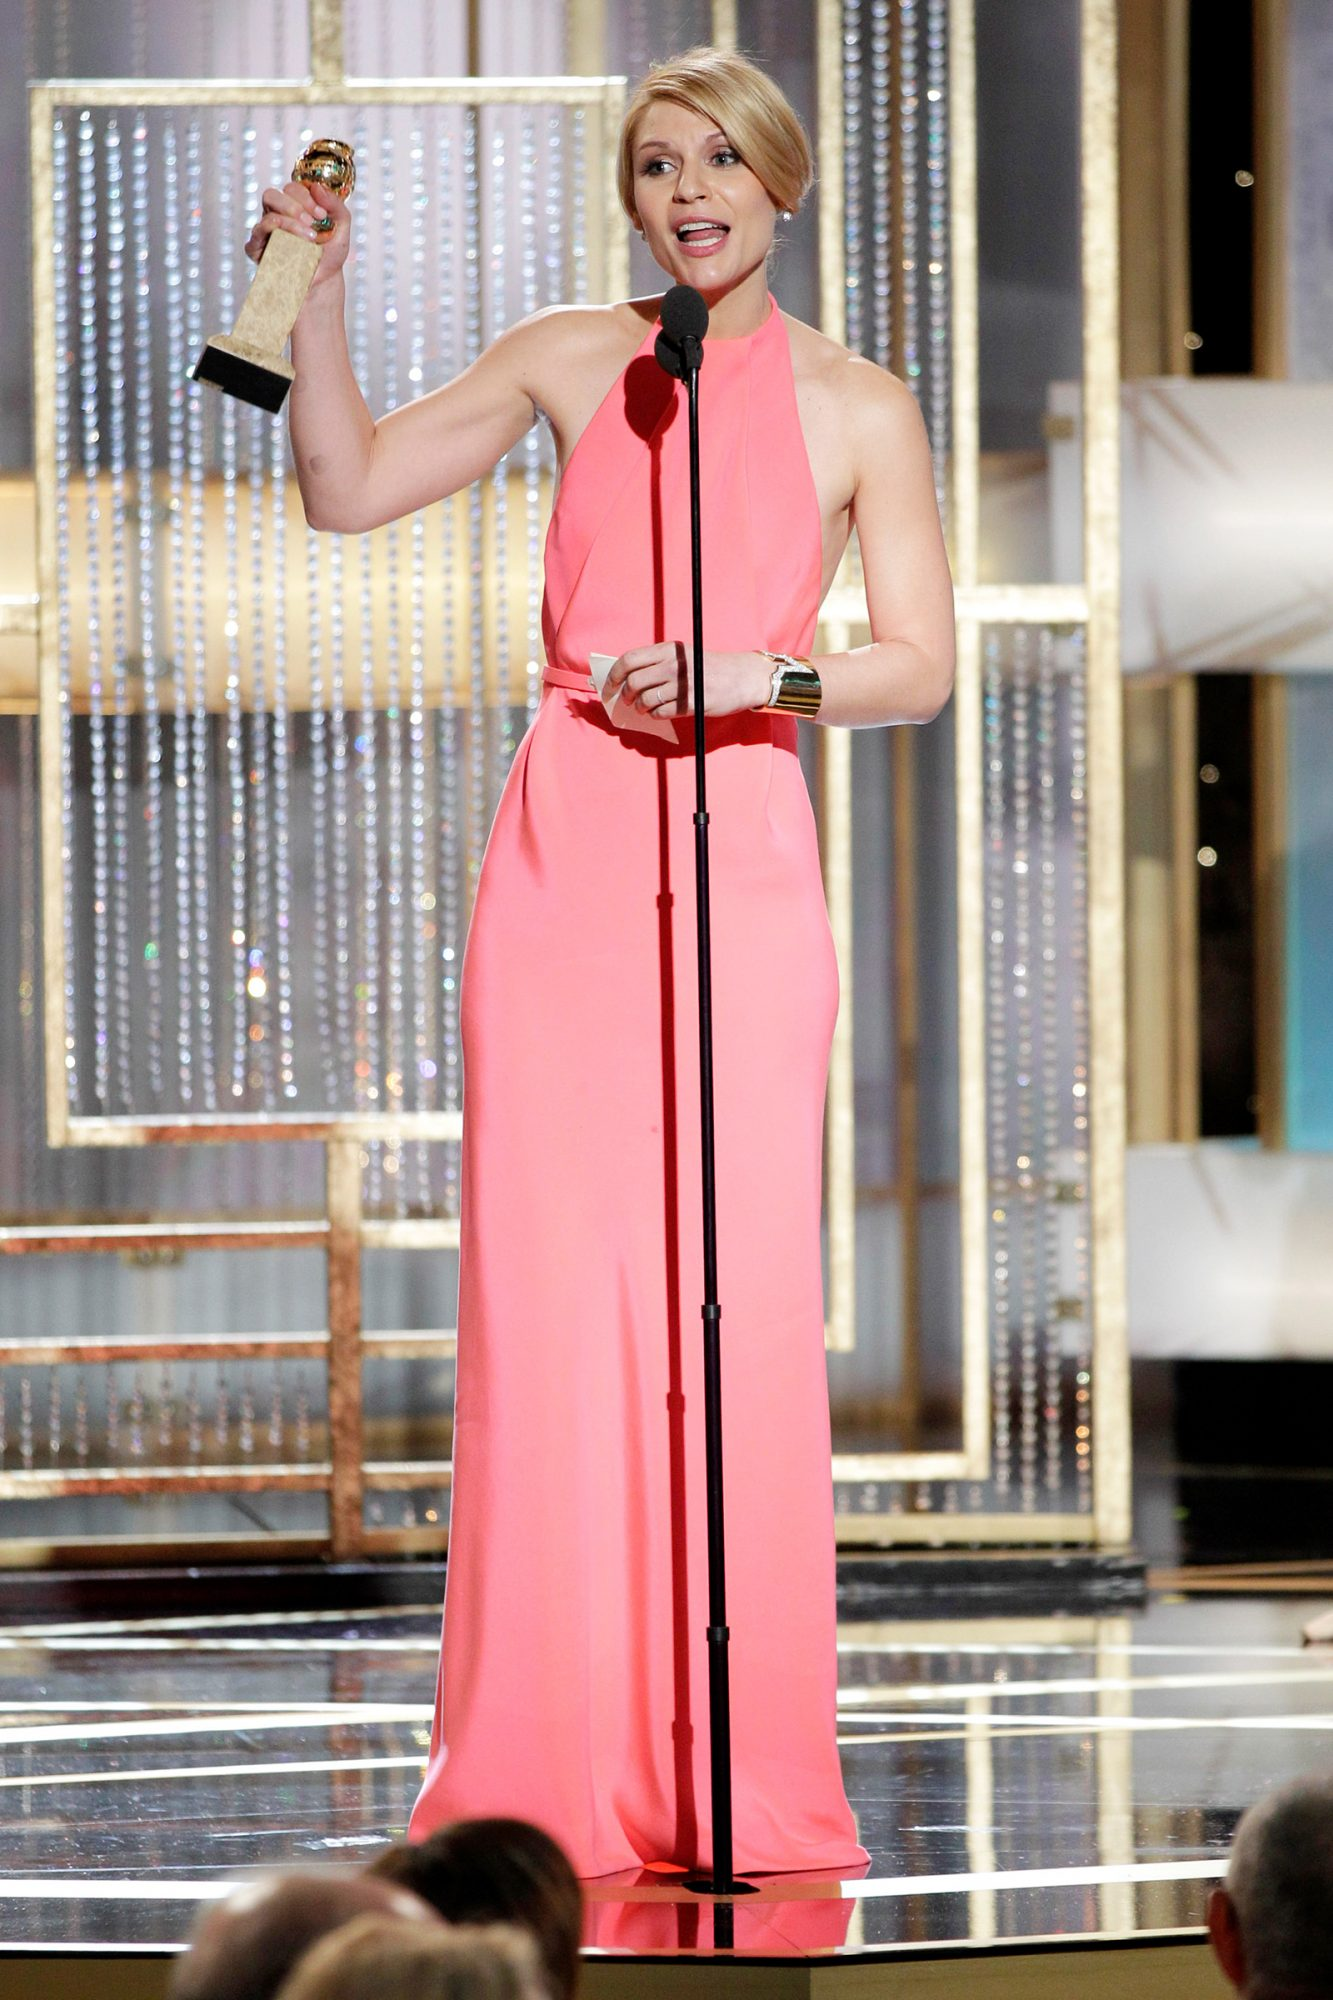 Claire Danes on stage during the 68th Annual Golden Globe Awards